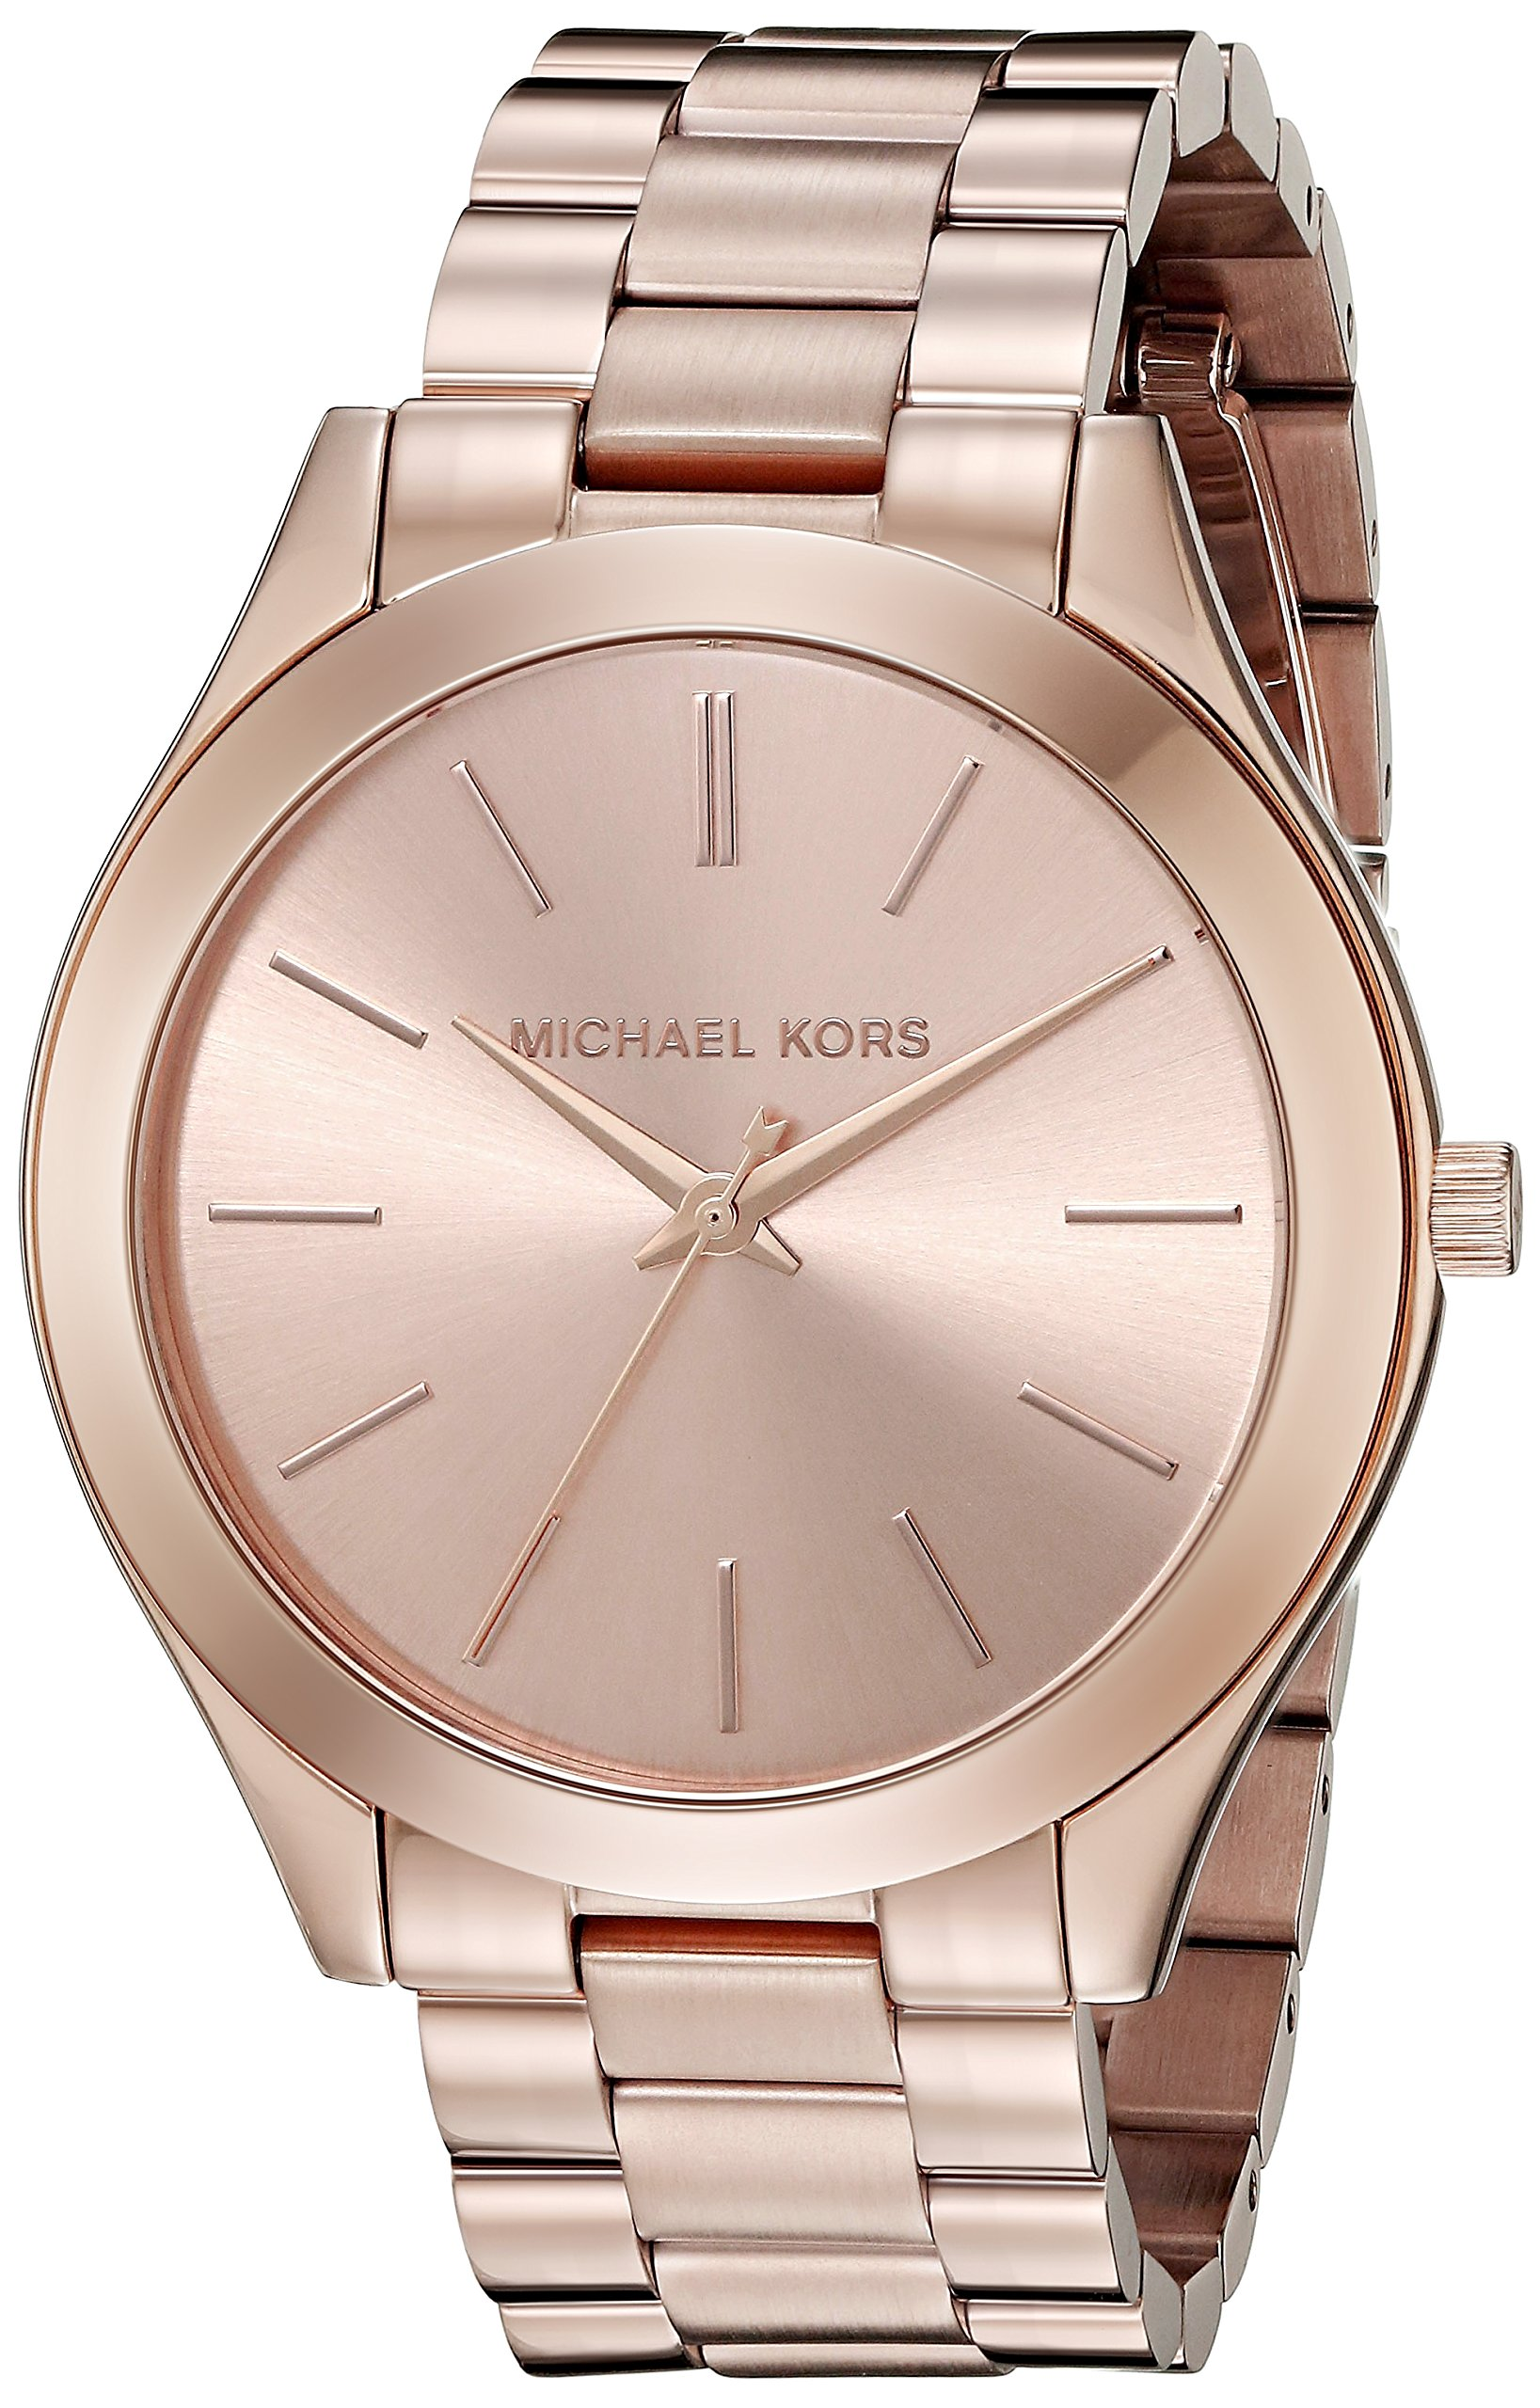 c5b0855015e0 Michael Kors Women s Runway Rose Gold-Tone Watch MK3197 - FEI ...